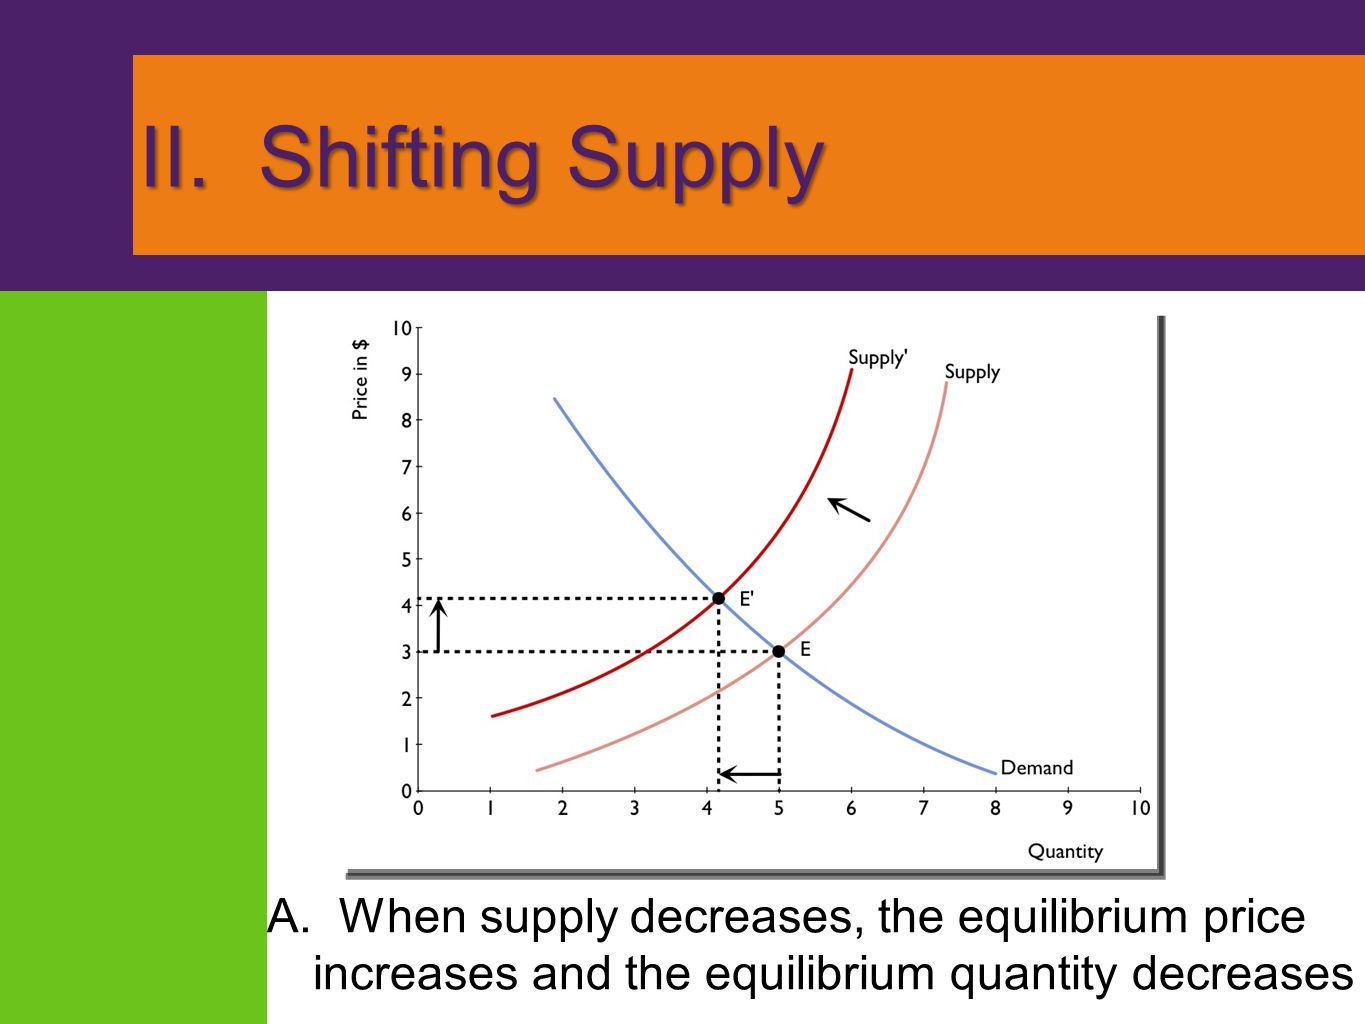 II. Shifting Supply A. When supply decreases, the equilibrium price increases and the equilibrium quantity decreases